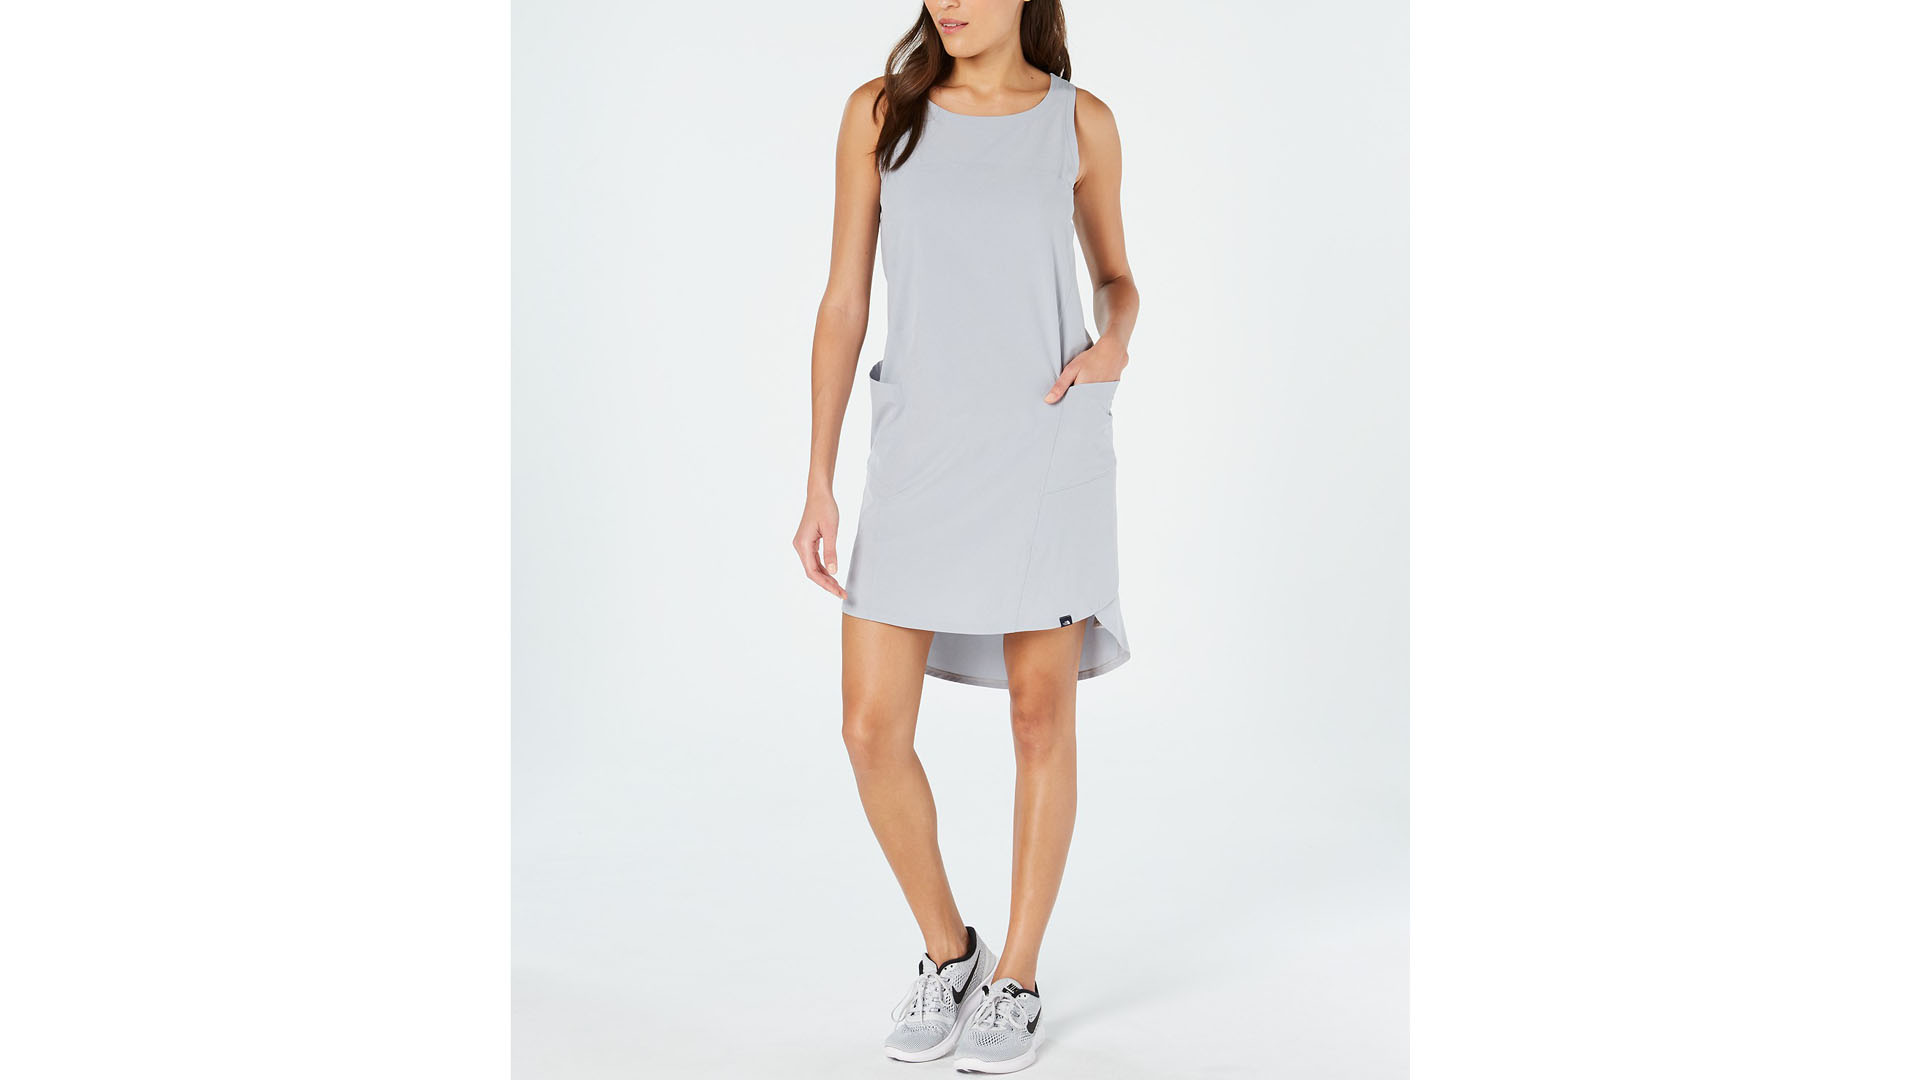 Under 99 Dress Is One Of The Best Macy's Deals To Mother's Day